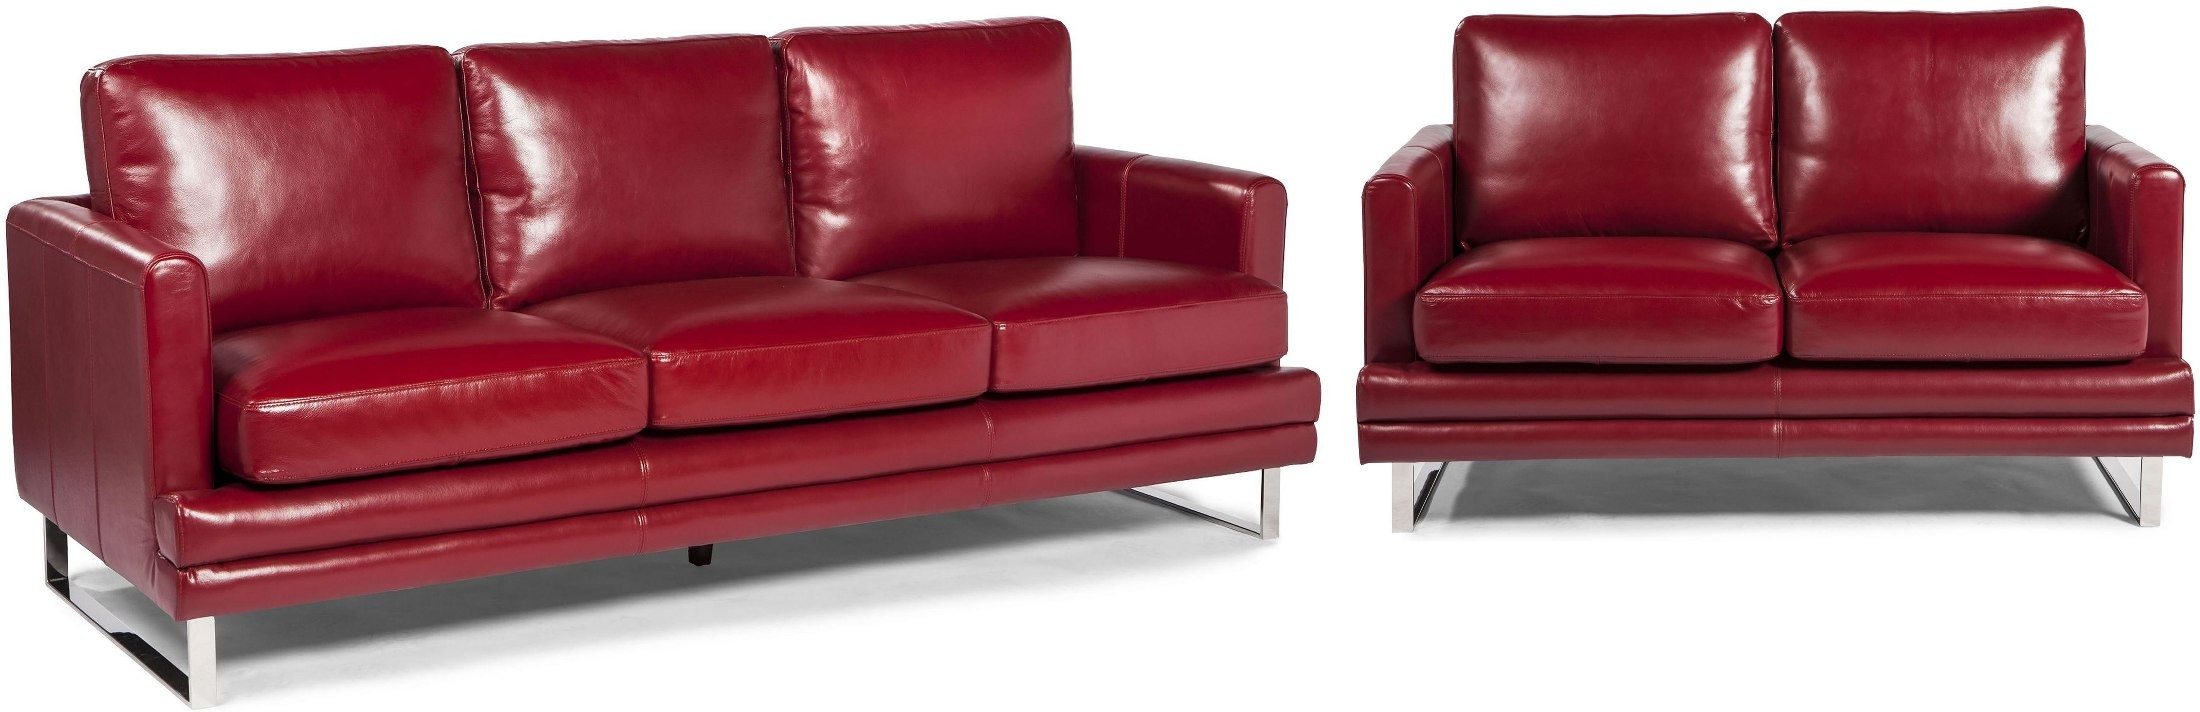 Melbourne Berry Red Leather Living Room Set